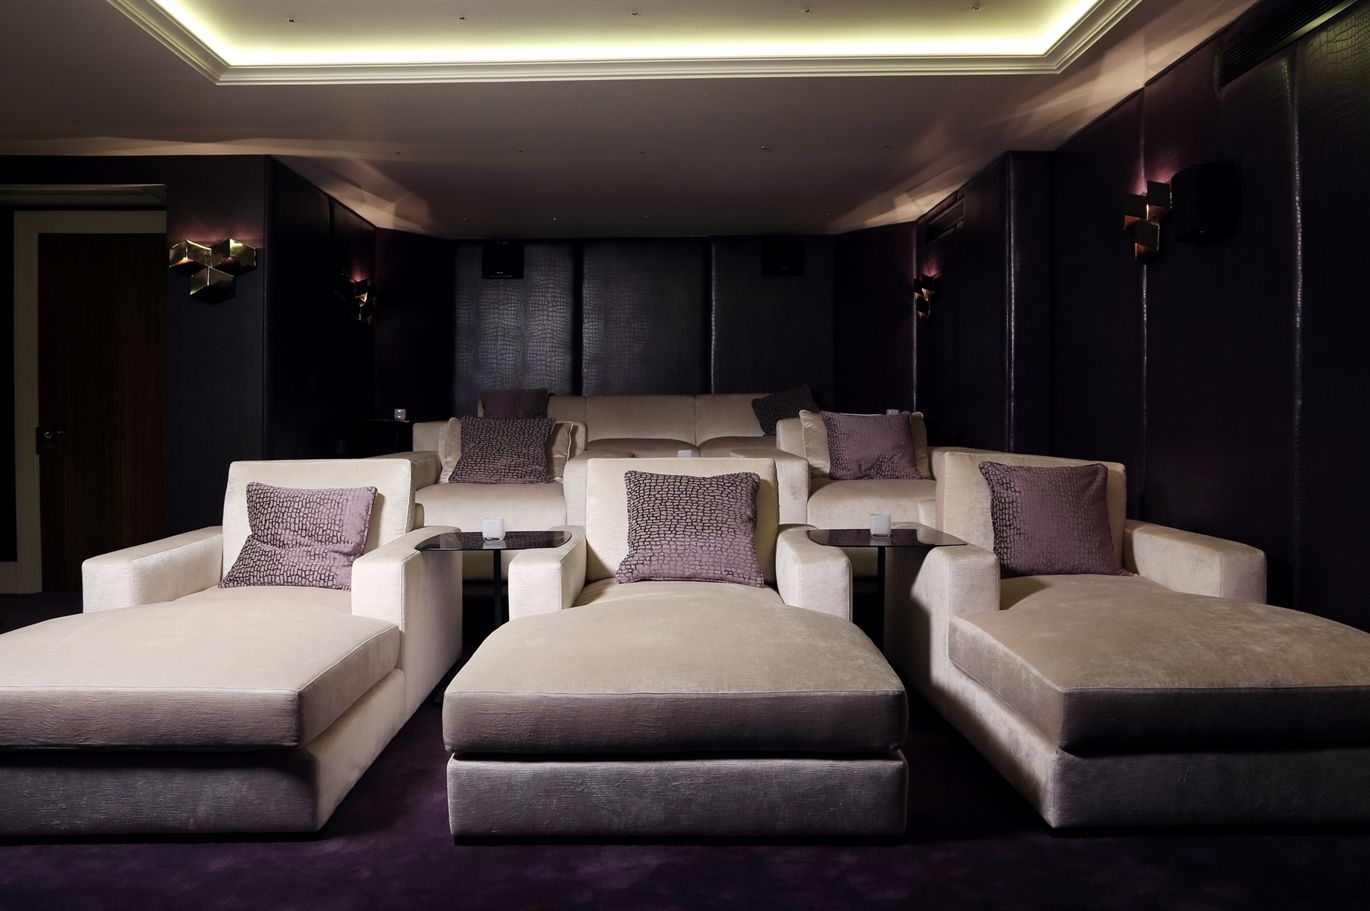 Cinema room pinteres for Theater room furniture ideas